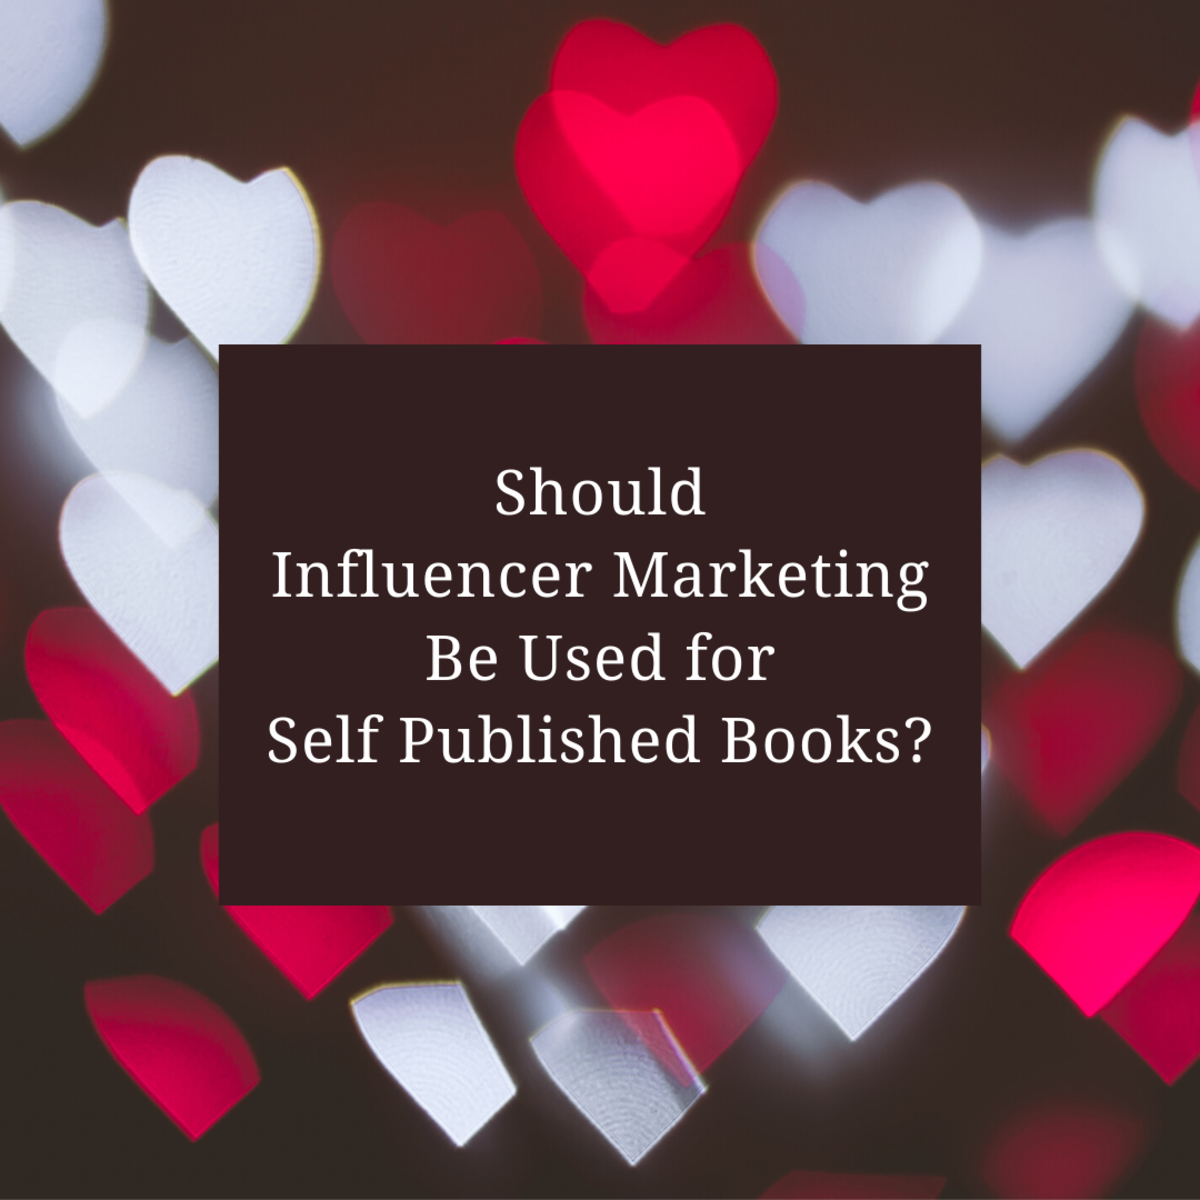 Should Influencer Marketing Be Used for Self Published Books?